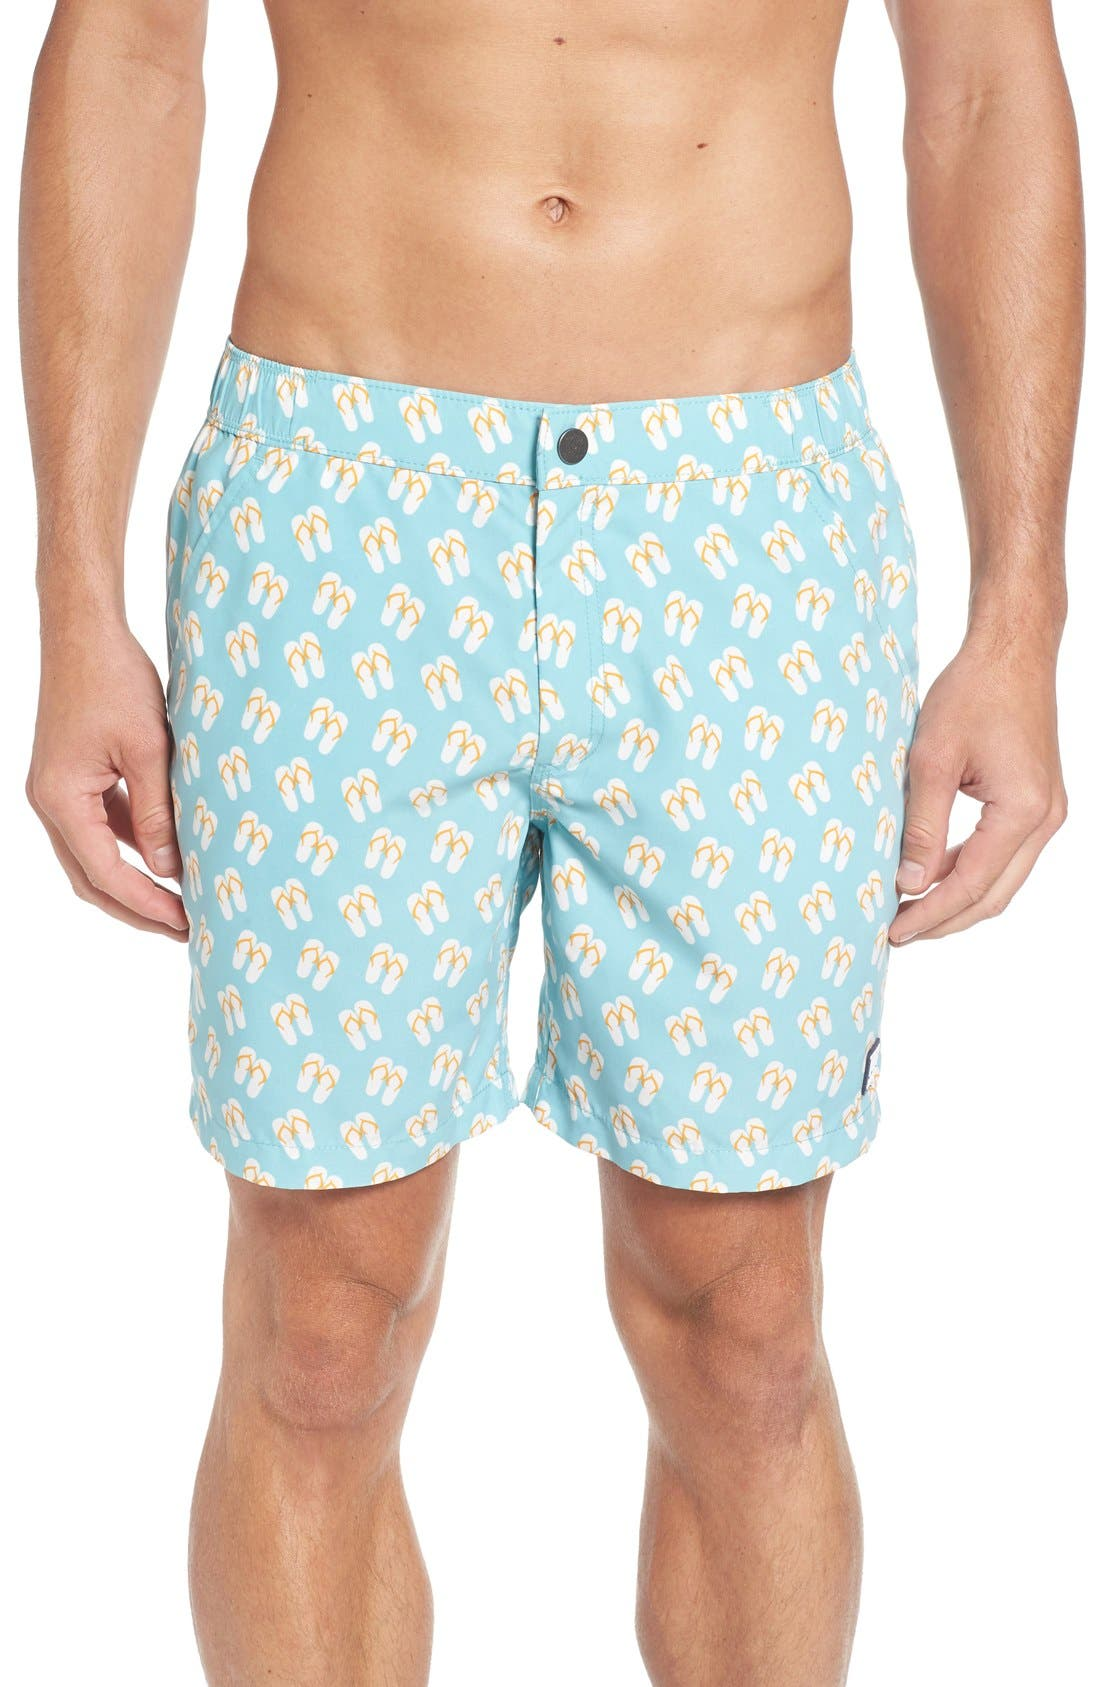 TOM & TEDDY Flip Flop Print Swim Trunks